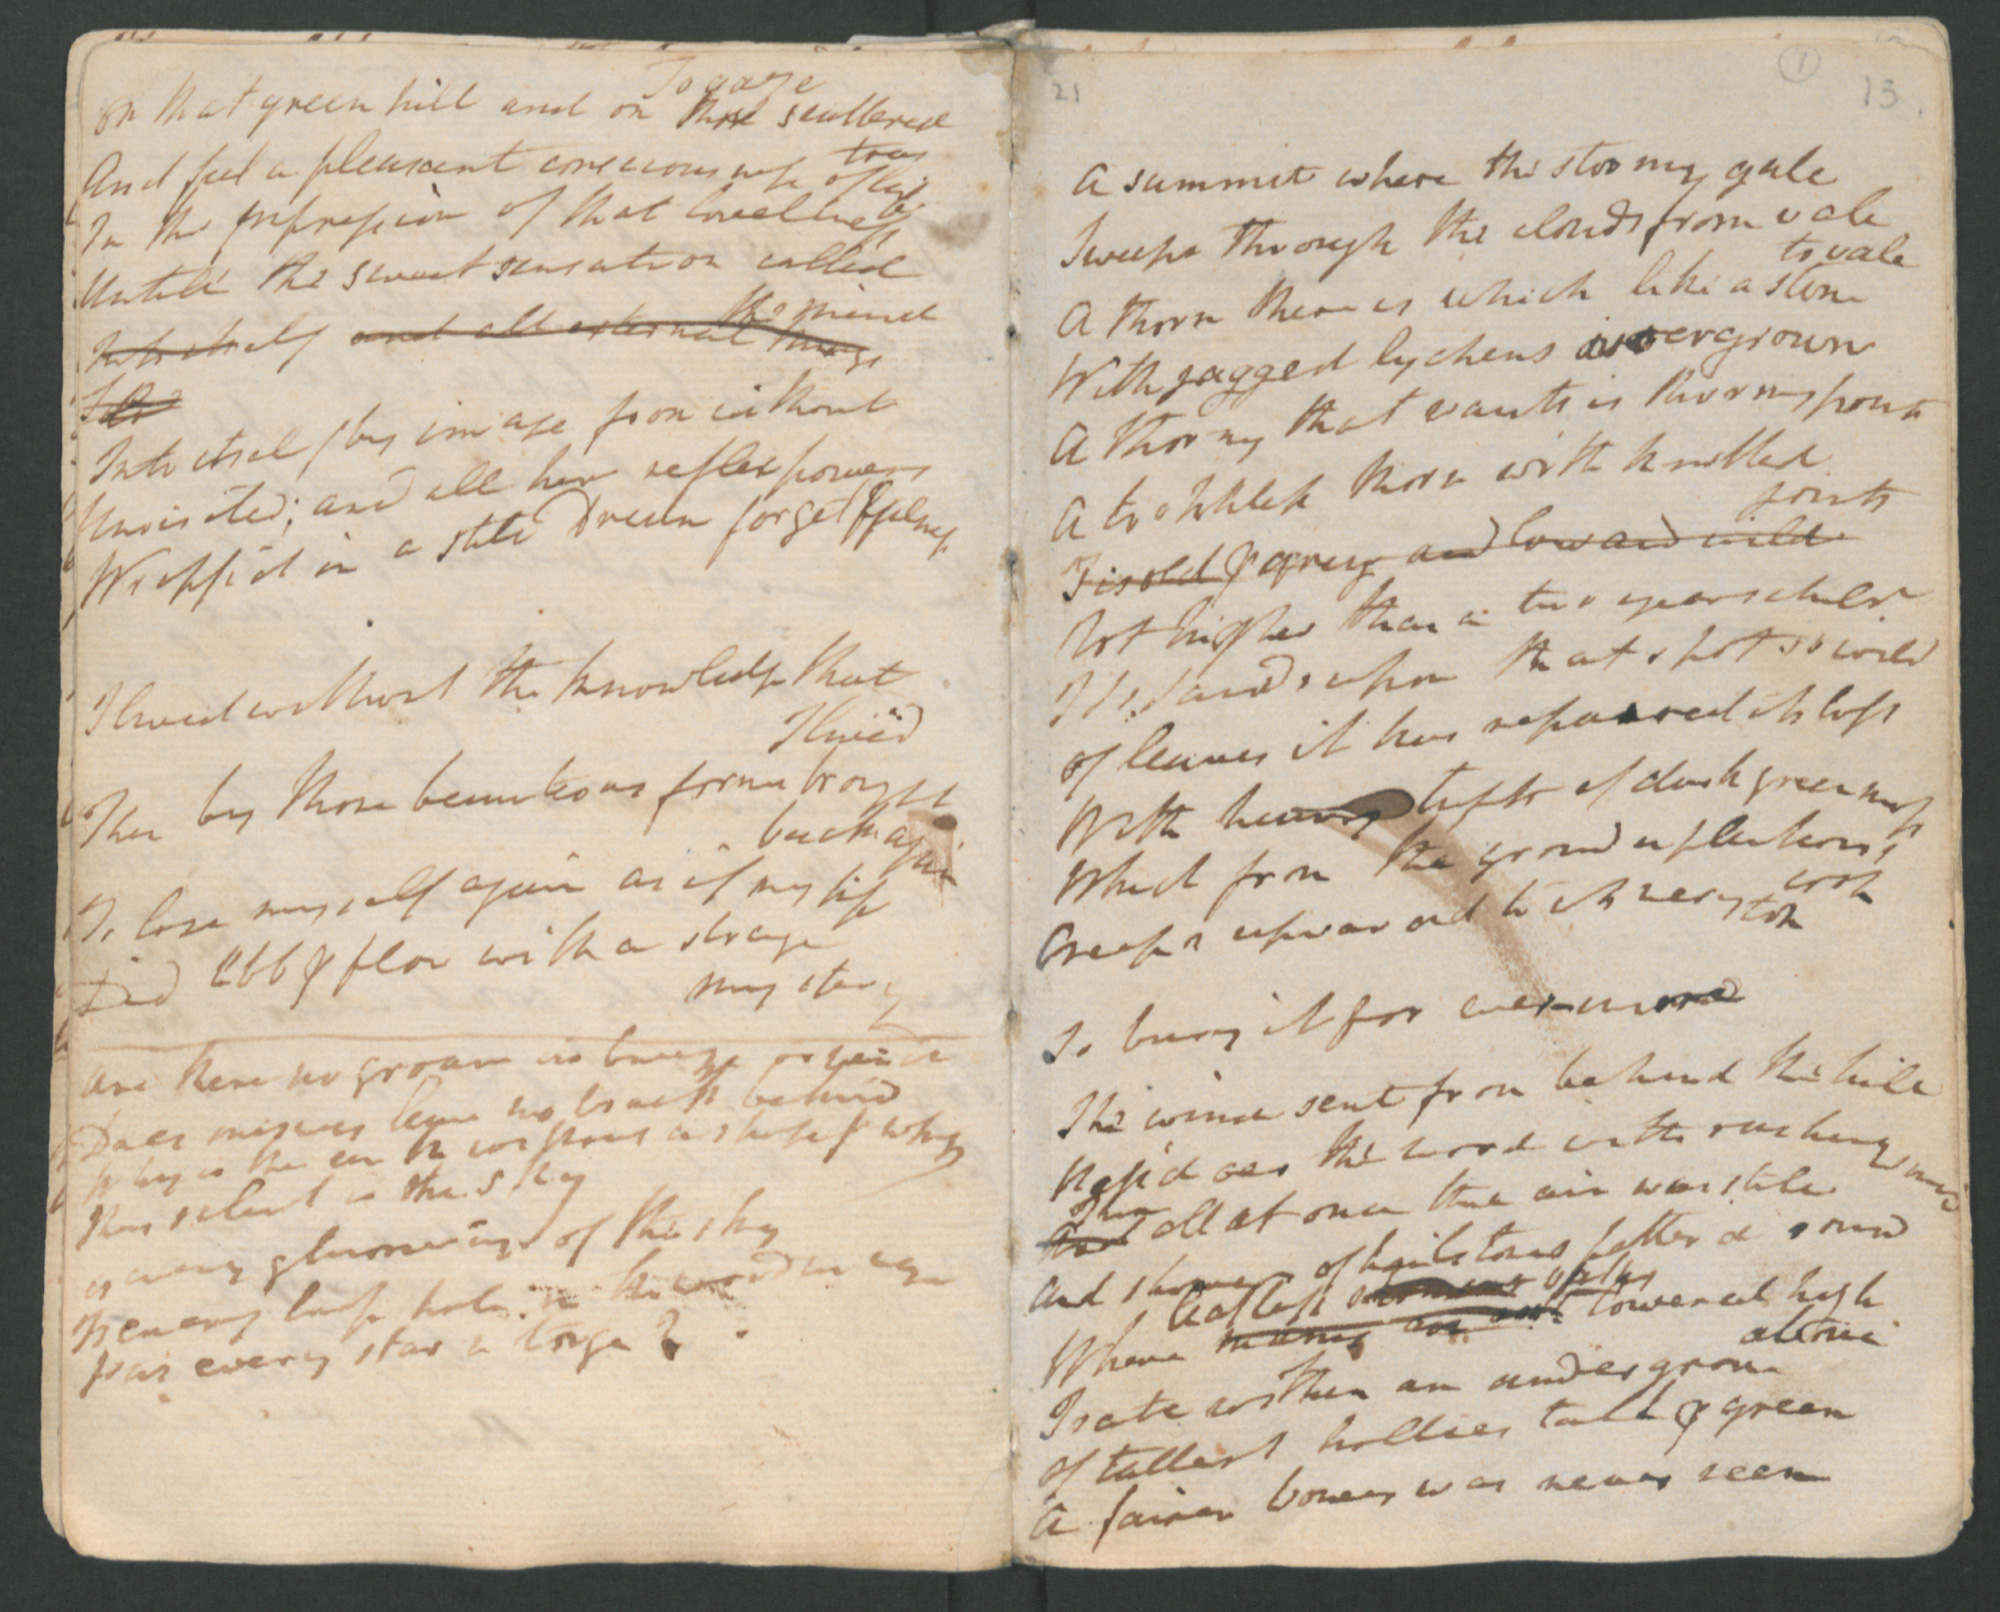 Manuscript of William Wordsworth's 'The Thorn'